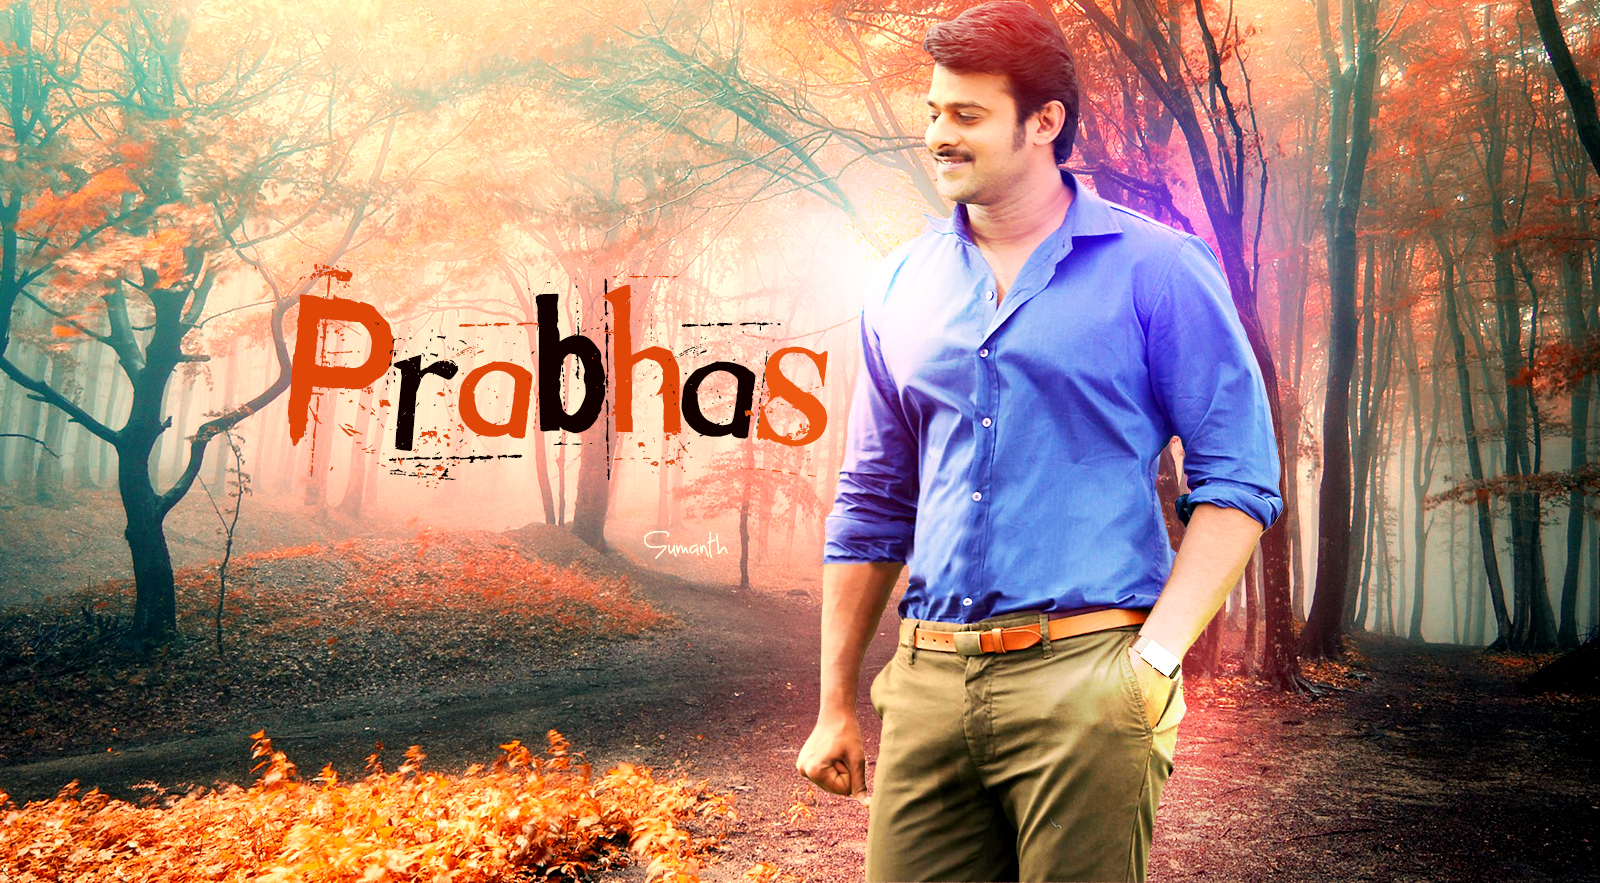 Prabhas Rebel New Stills Wallpapers Ultra Hd 2000: Prabhas Hd Stills